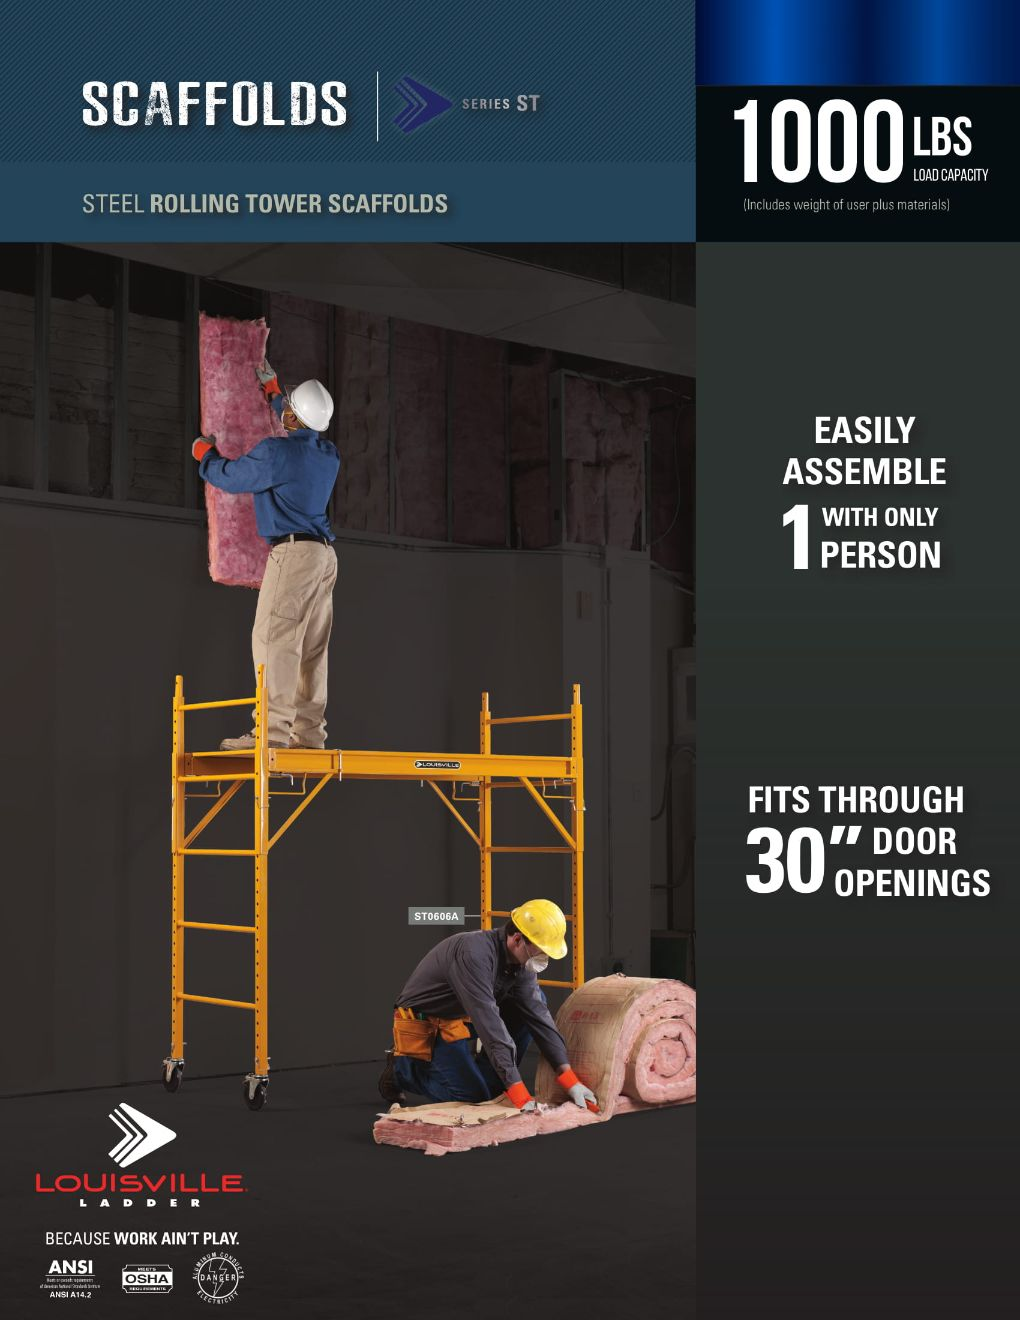 ST-Steel Rolling Tower Scaffolds Flyer and Spec Sheets Marketing Material Image